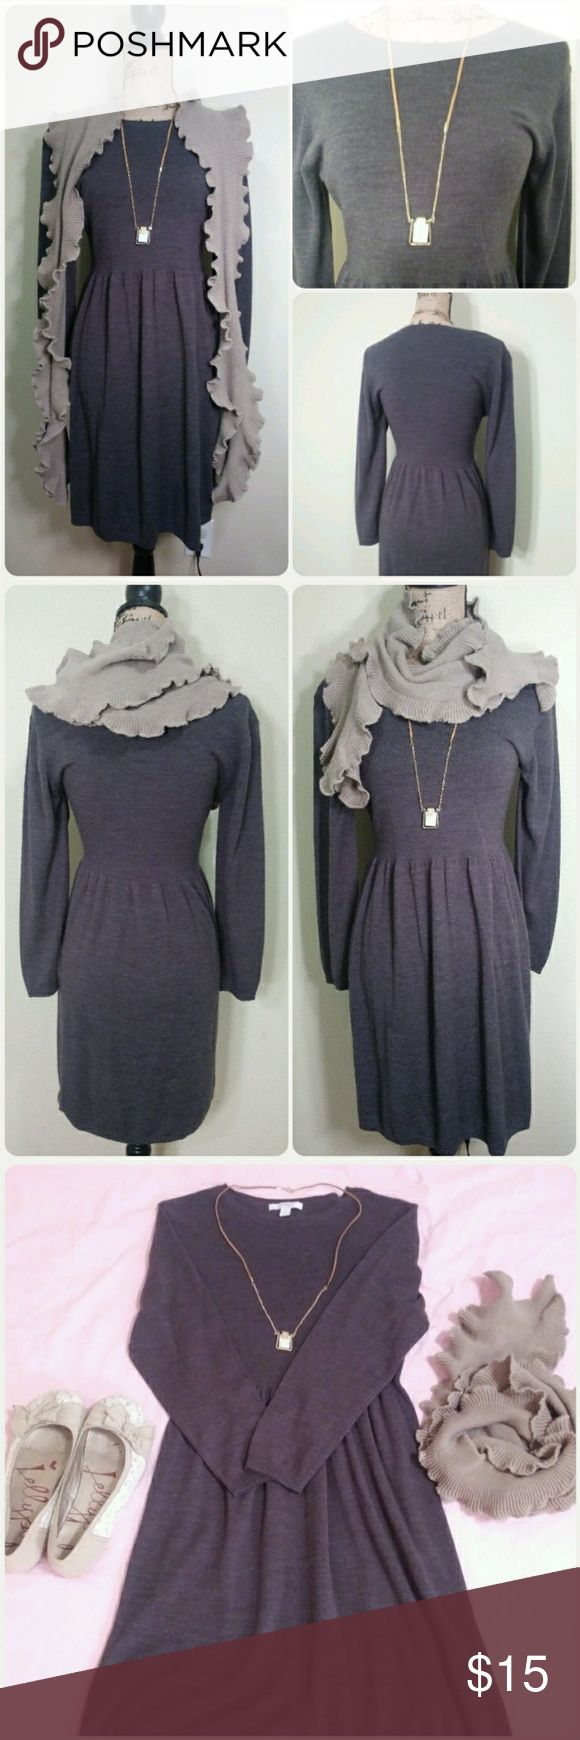 dressbarn PETITE - sweater dress - size PL Brand: dressbarn PETITE Size: PL (Petite Large) Color: Gray Condition: Perfectly Preloved (little to no pilling, tears, stains, etc) Description: This long sleeved sweater dress from dressbarn's PETITE line is a comfy, classy & versatile addition to a fall wardrobe. It could be dressed up or down in many different ways. Think chocolate cardi and boots -- black 3/4 cardi and tights - perfect for work, school church and pretty much any autumn outing…